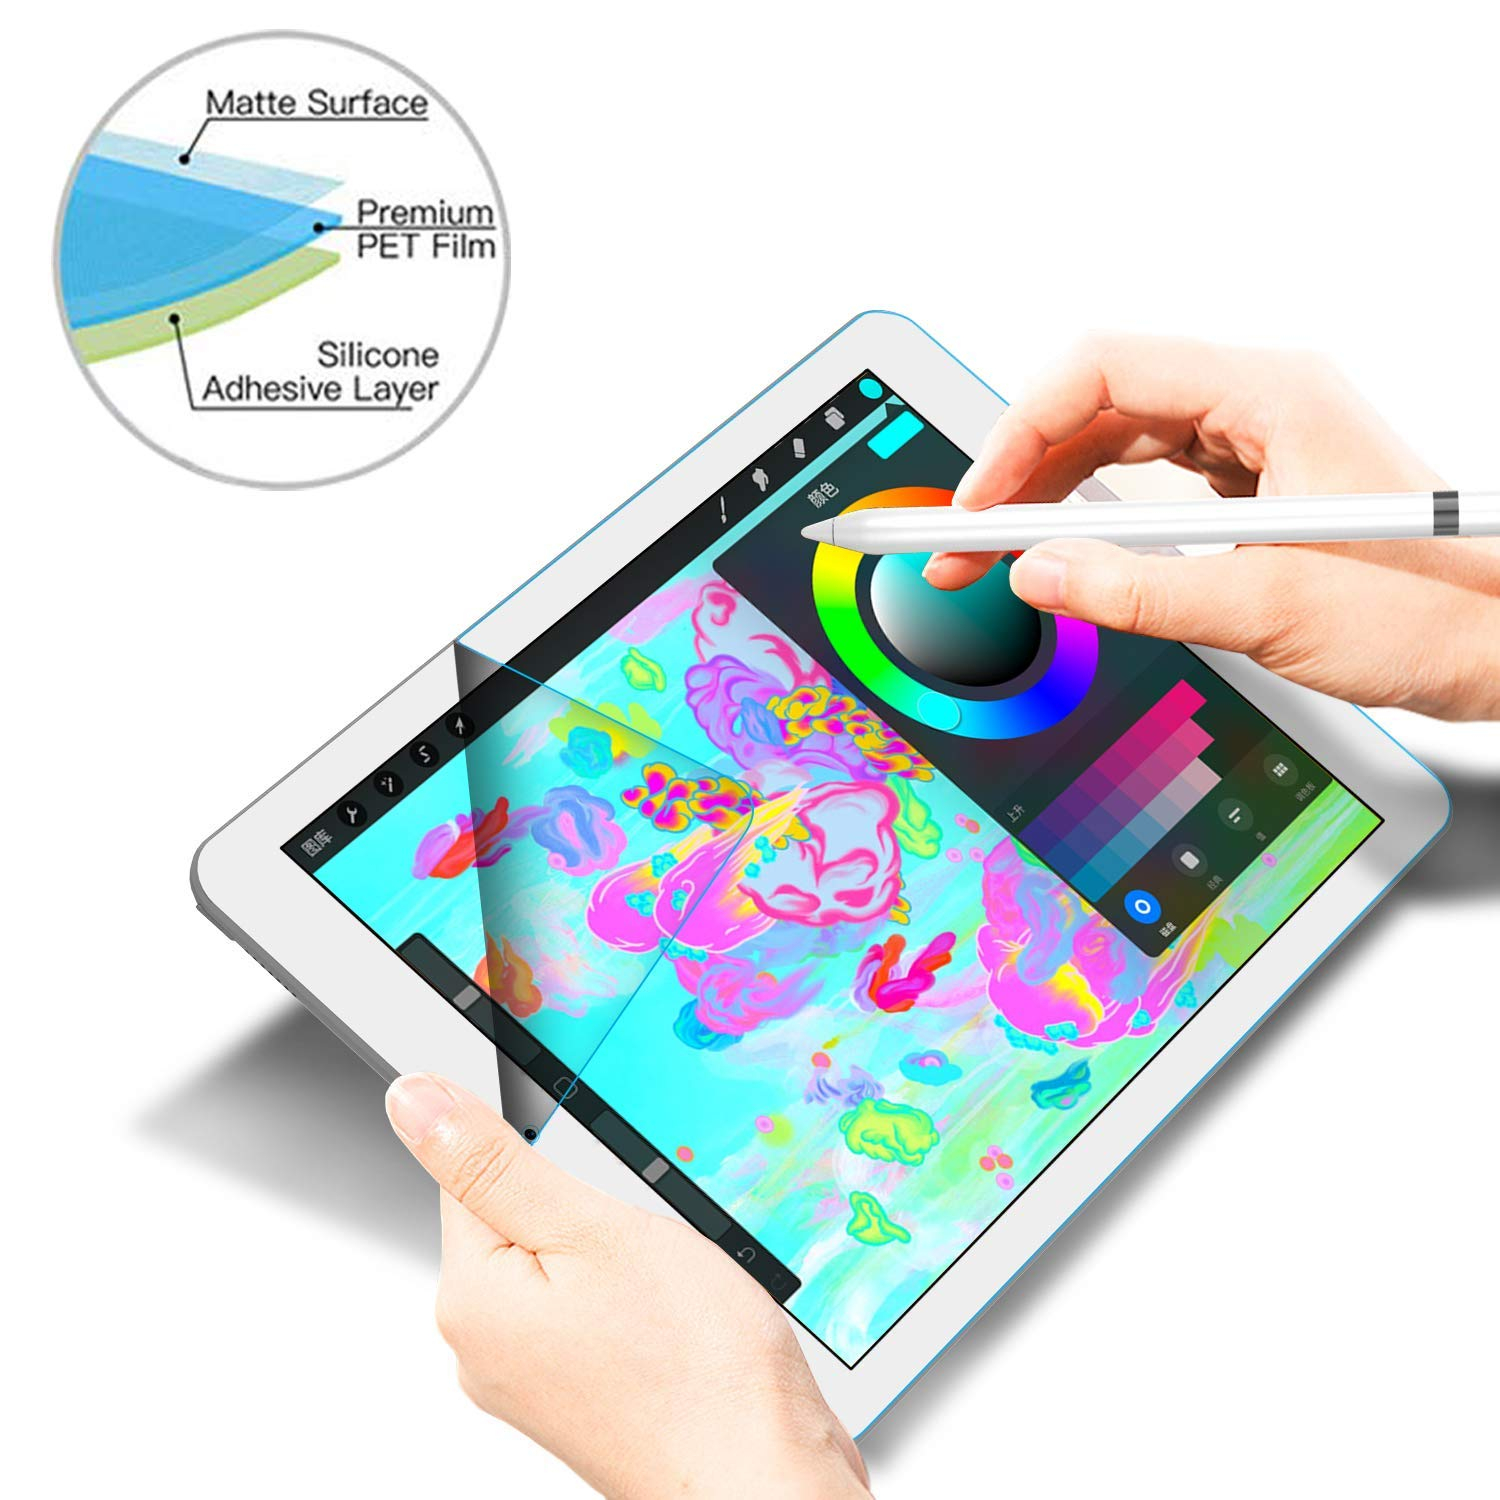 Draw and Sketch with the Apple Pencil Like on Paper Matte Screen Protector New Nillkin Write Like Paper Screen Protector Compatible With iPad Pro 12.9 Inch 2018,Write